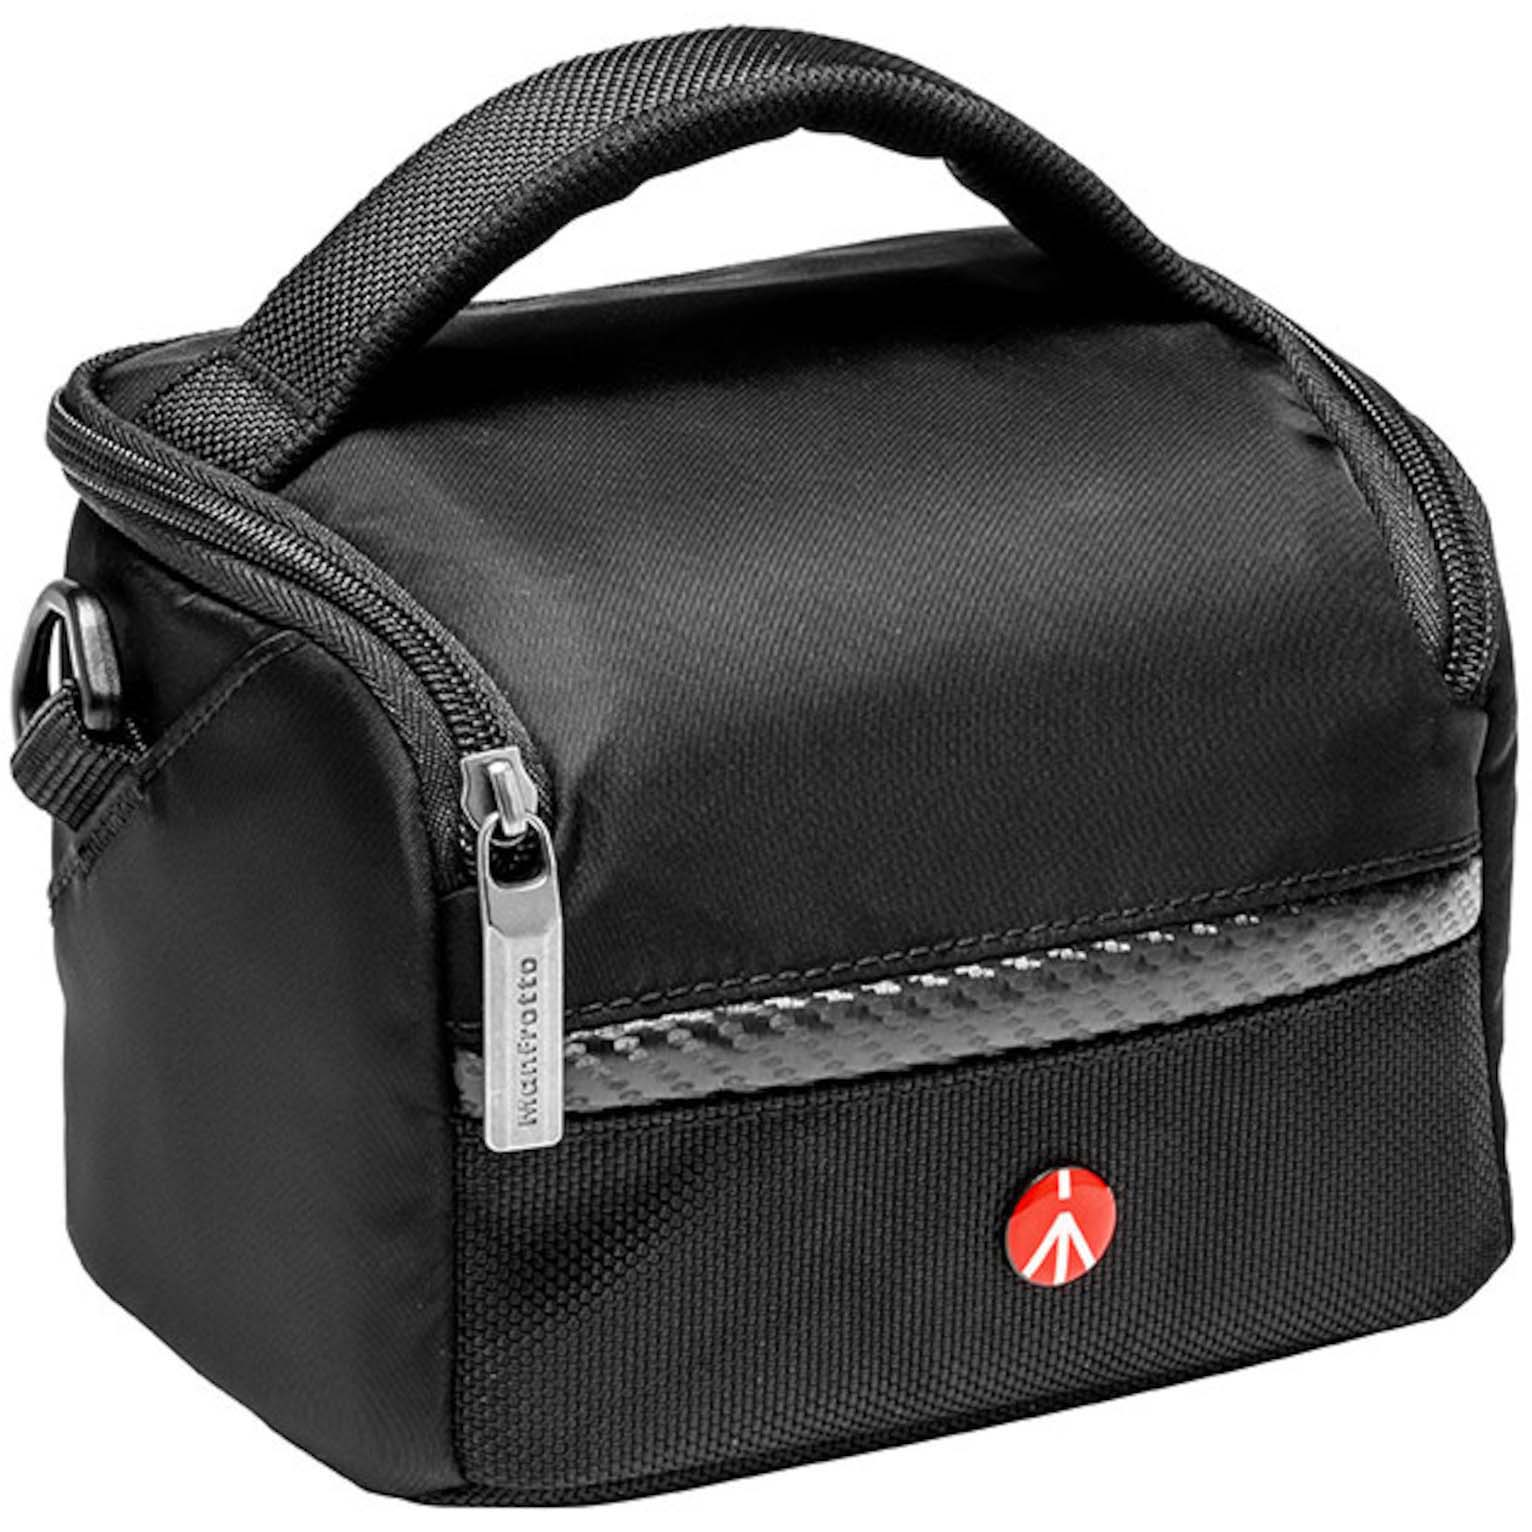 ESTUCHE MANFROTTO ACTIVE SHOULDER BAG 1 (MBMA-SB-A1) MANFROTTO